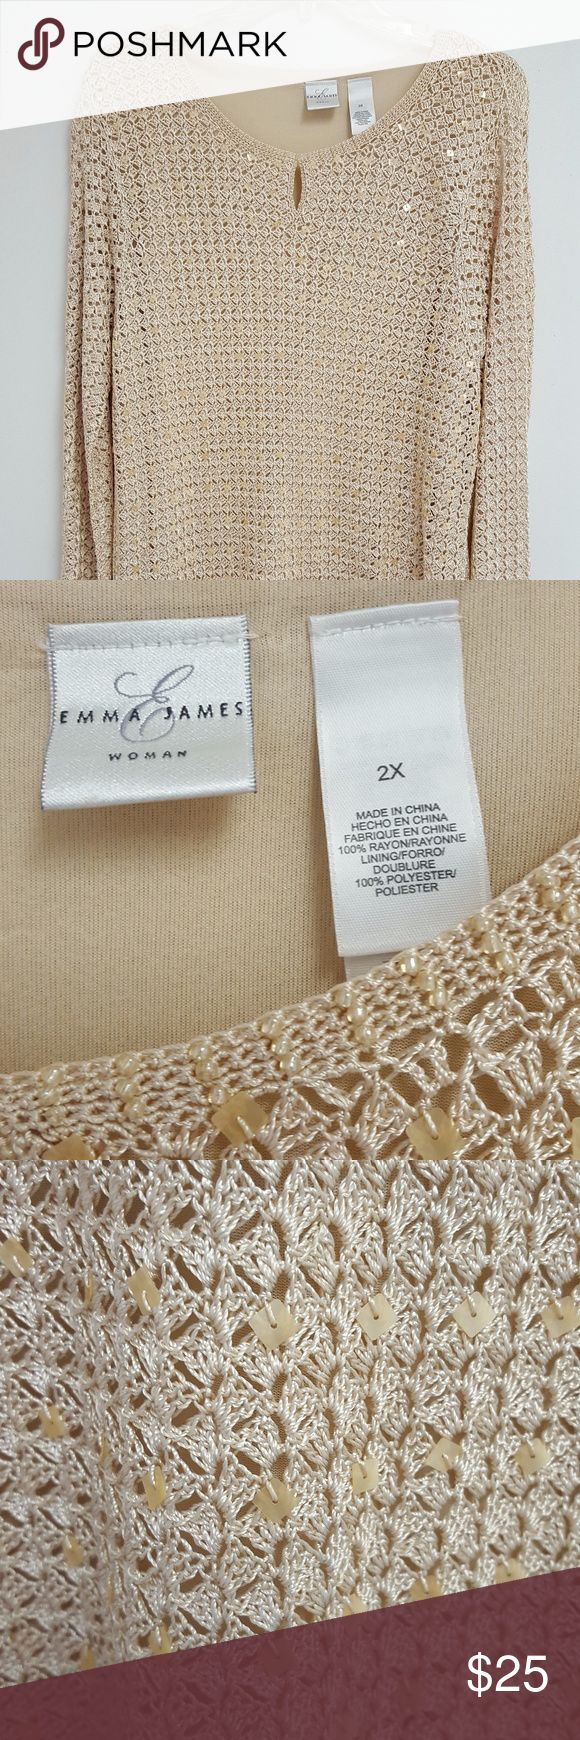 """EMMA JAMES WOMAN SIZE 2X TOP FROM THE ESTATE OF A TOP EXECUTIVE WITH MACY'S IN NEW YORK CITY.  THIS ELEGANT TOP MEASURES 31"""" LONG FROM SHOULDER TO BOTTOM AND 19"""" FROM ARMPIT TO ARMPIT. Emma James Tops"""